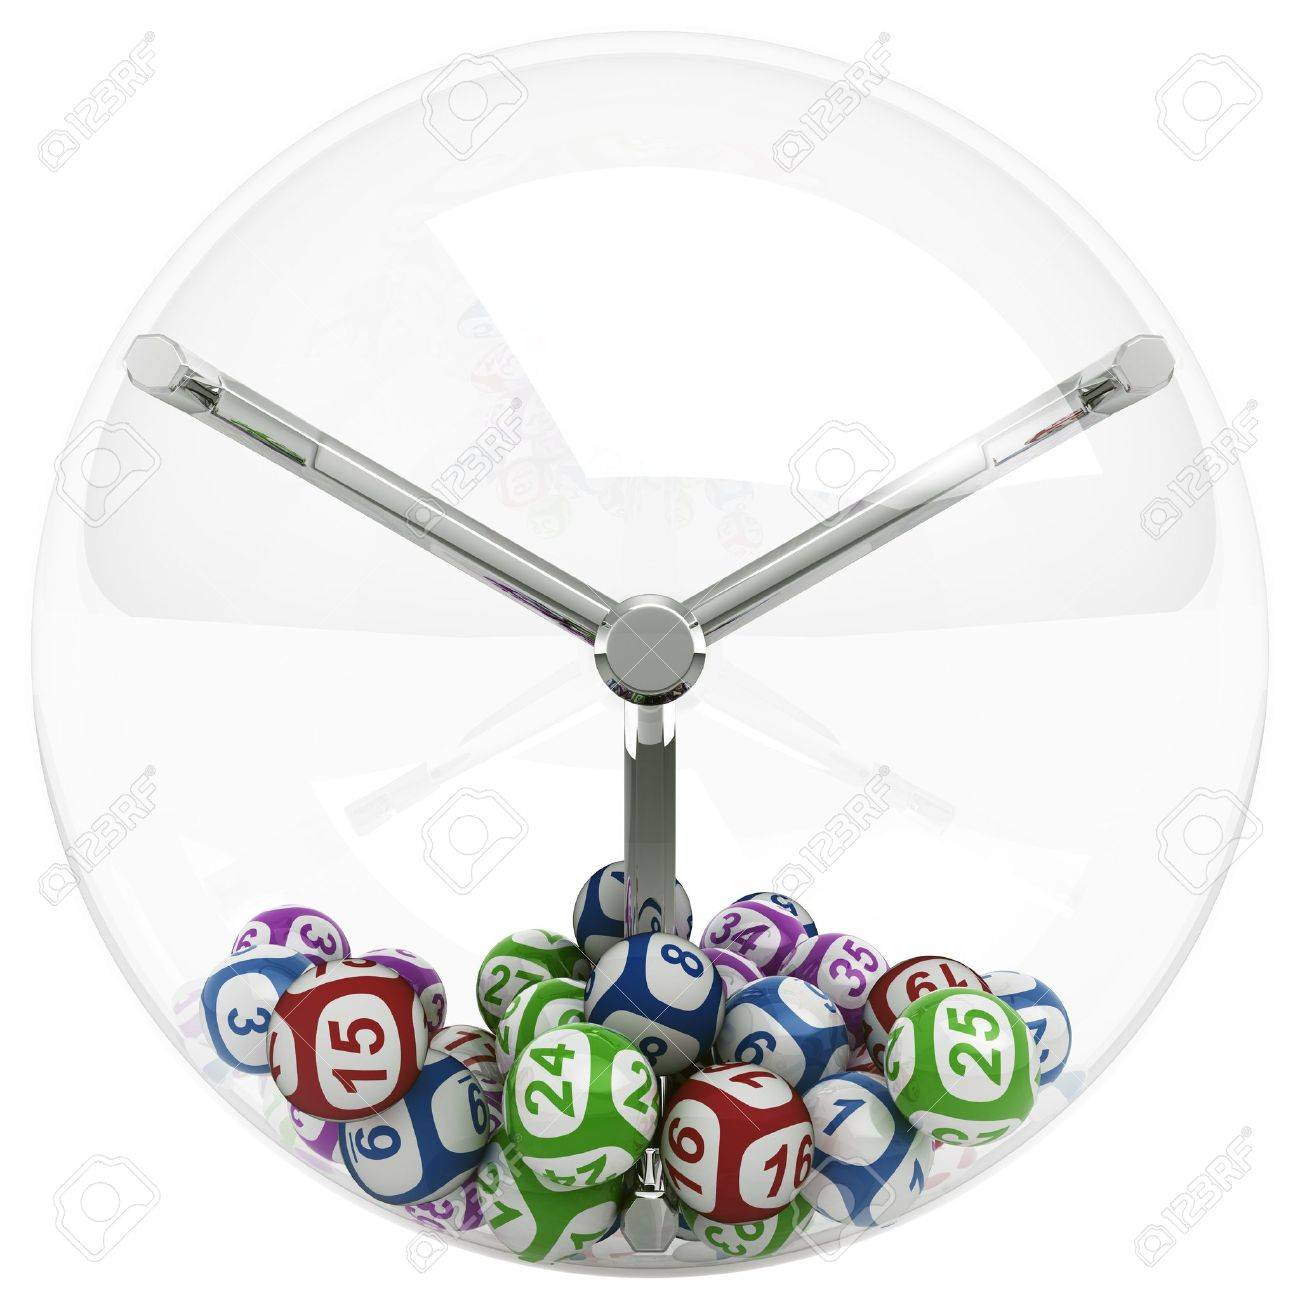 3d rendering of lottery machine with balls Stock Photo - 5462684